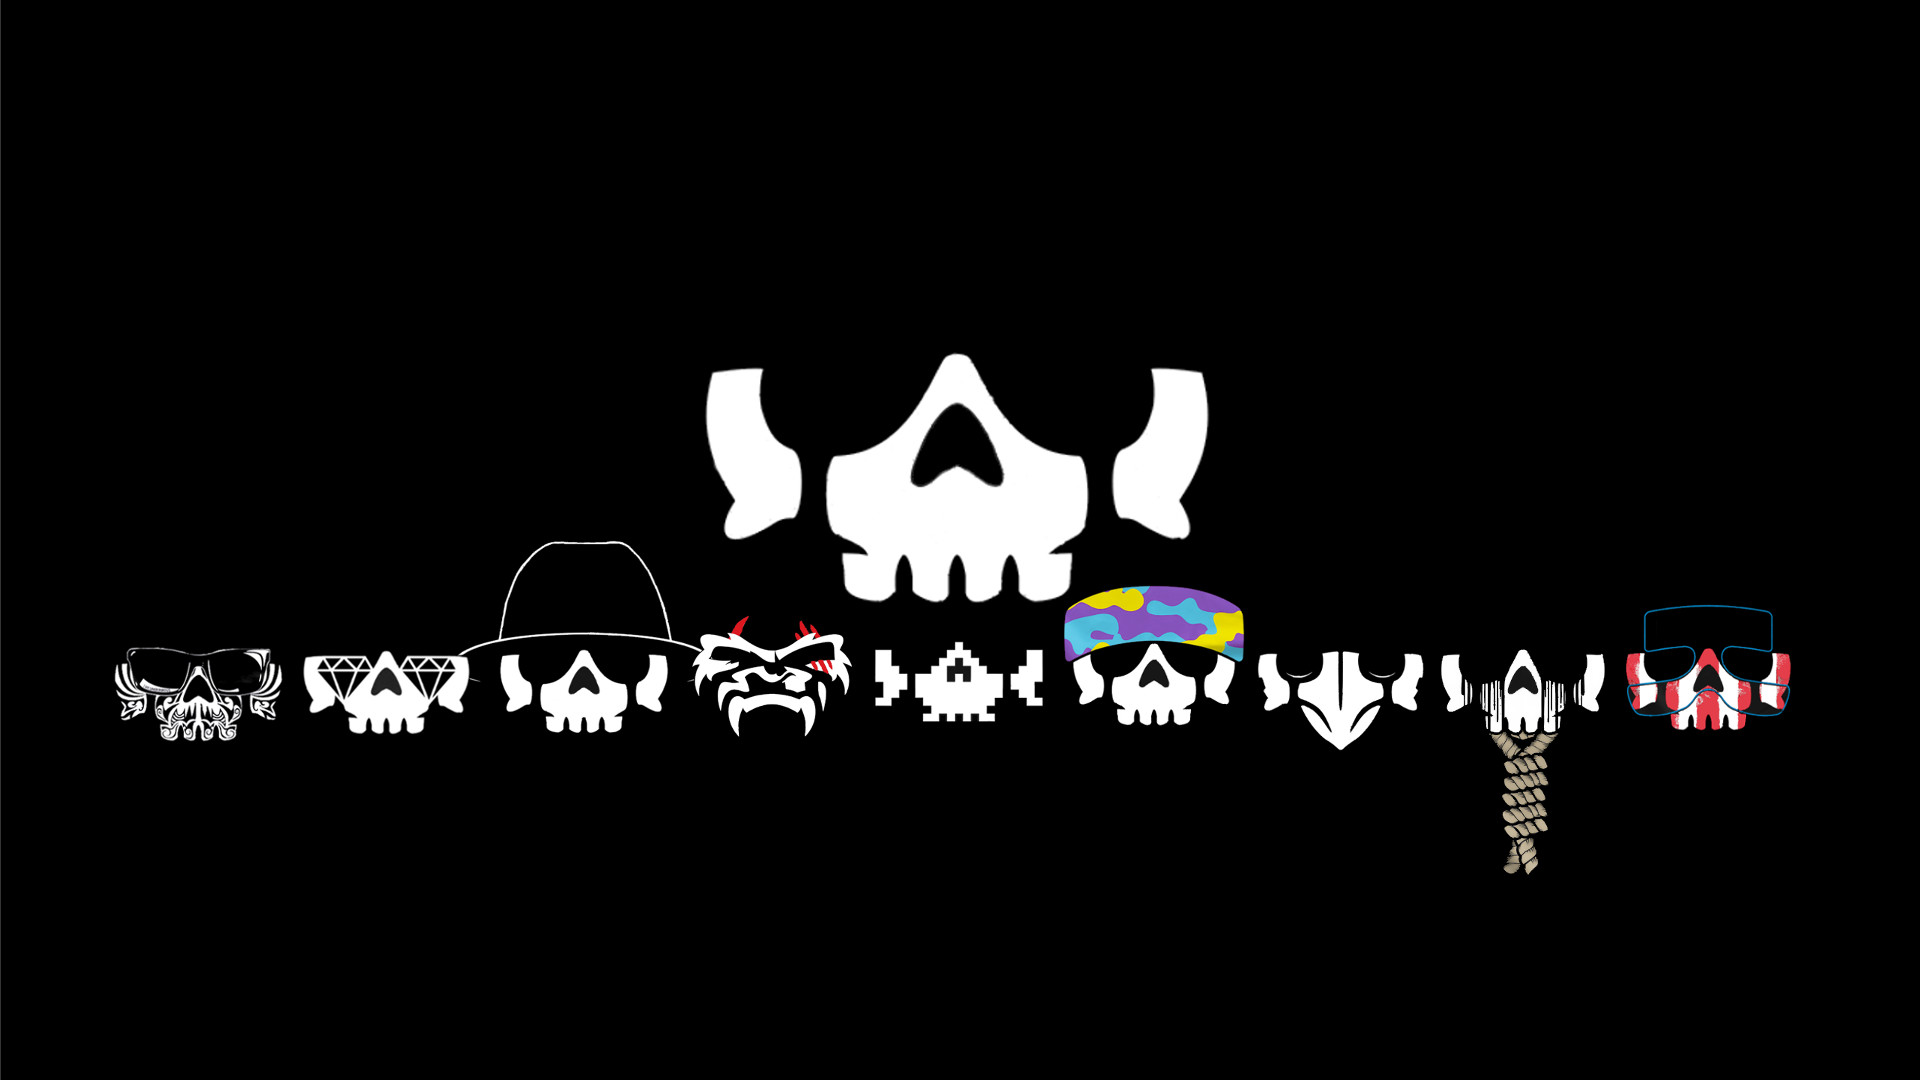 Inspired by /u/BoomanShames' minimalist Bullet Club poster, here's the  entire Club.